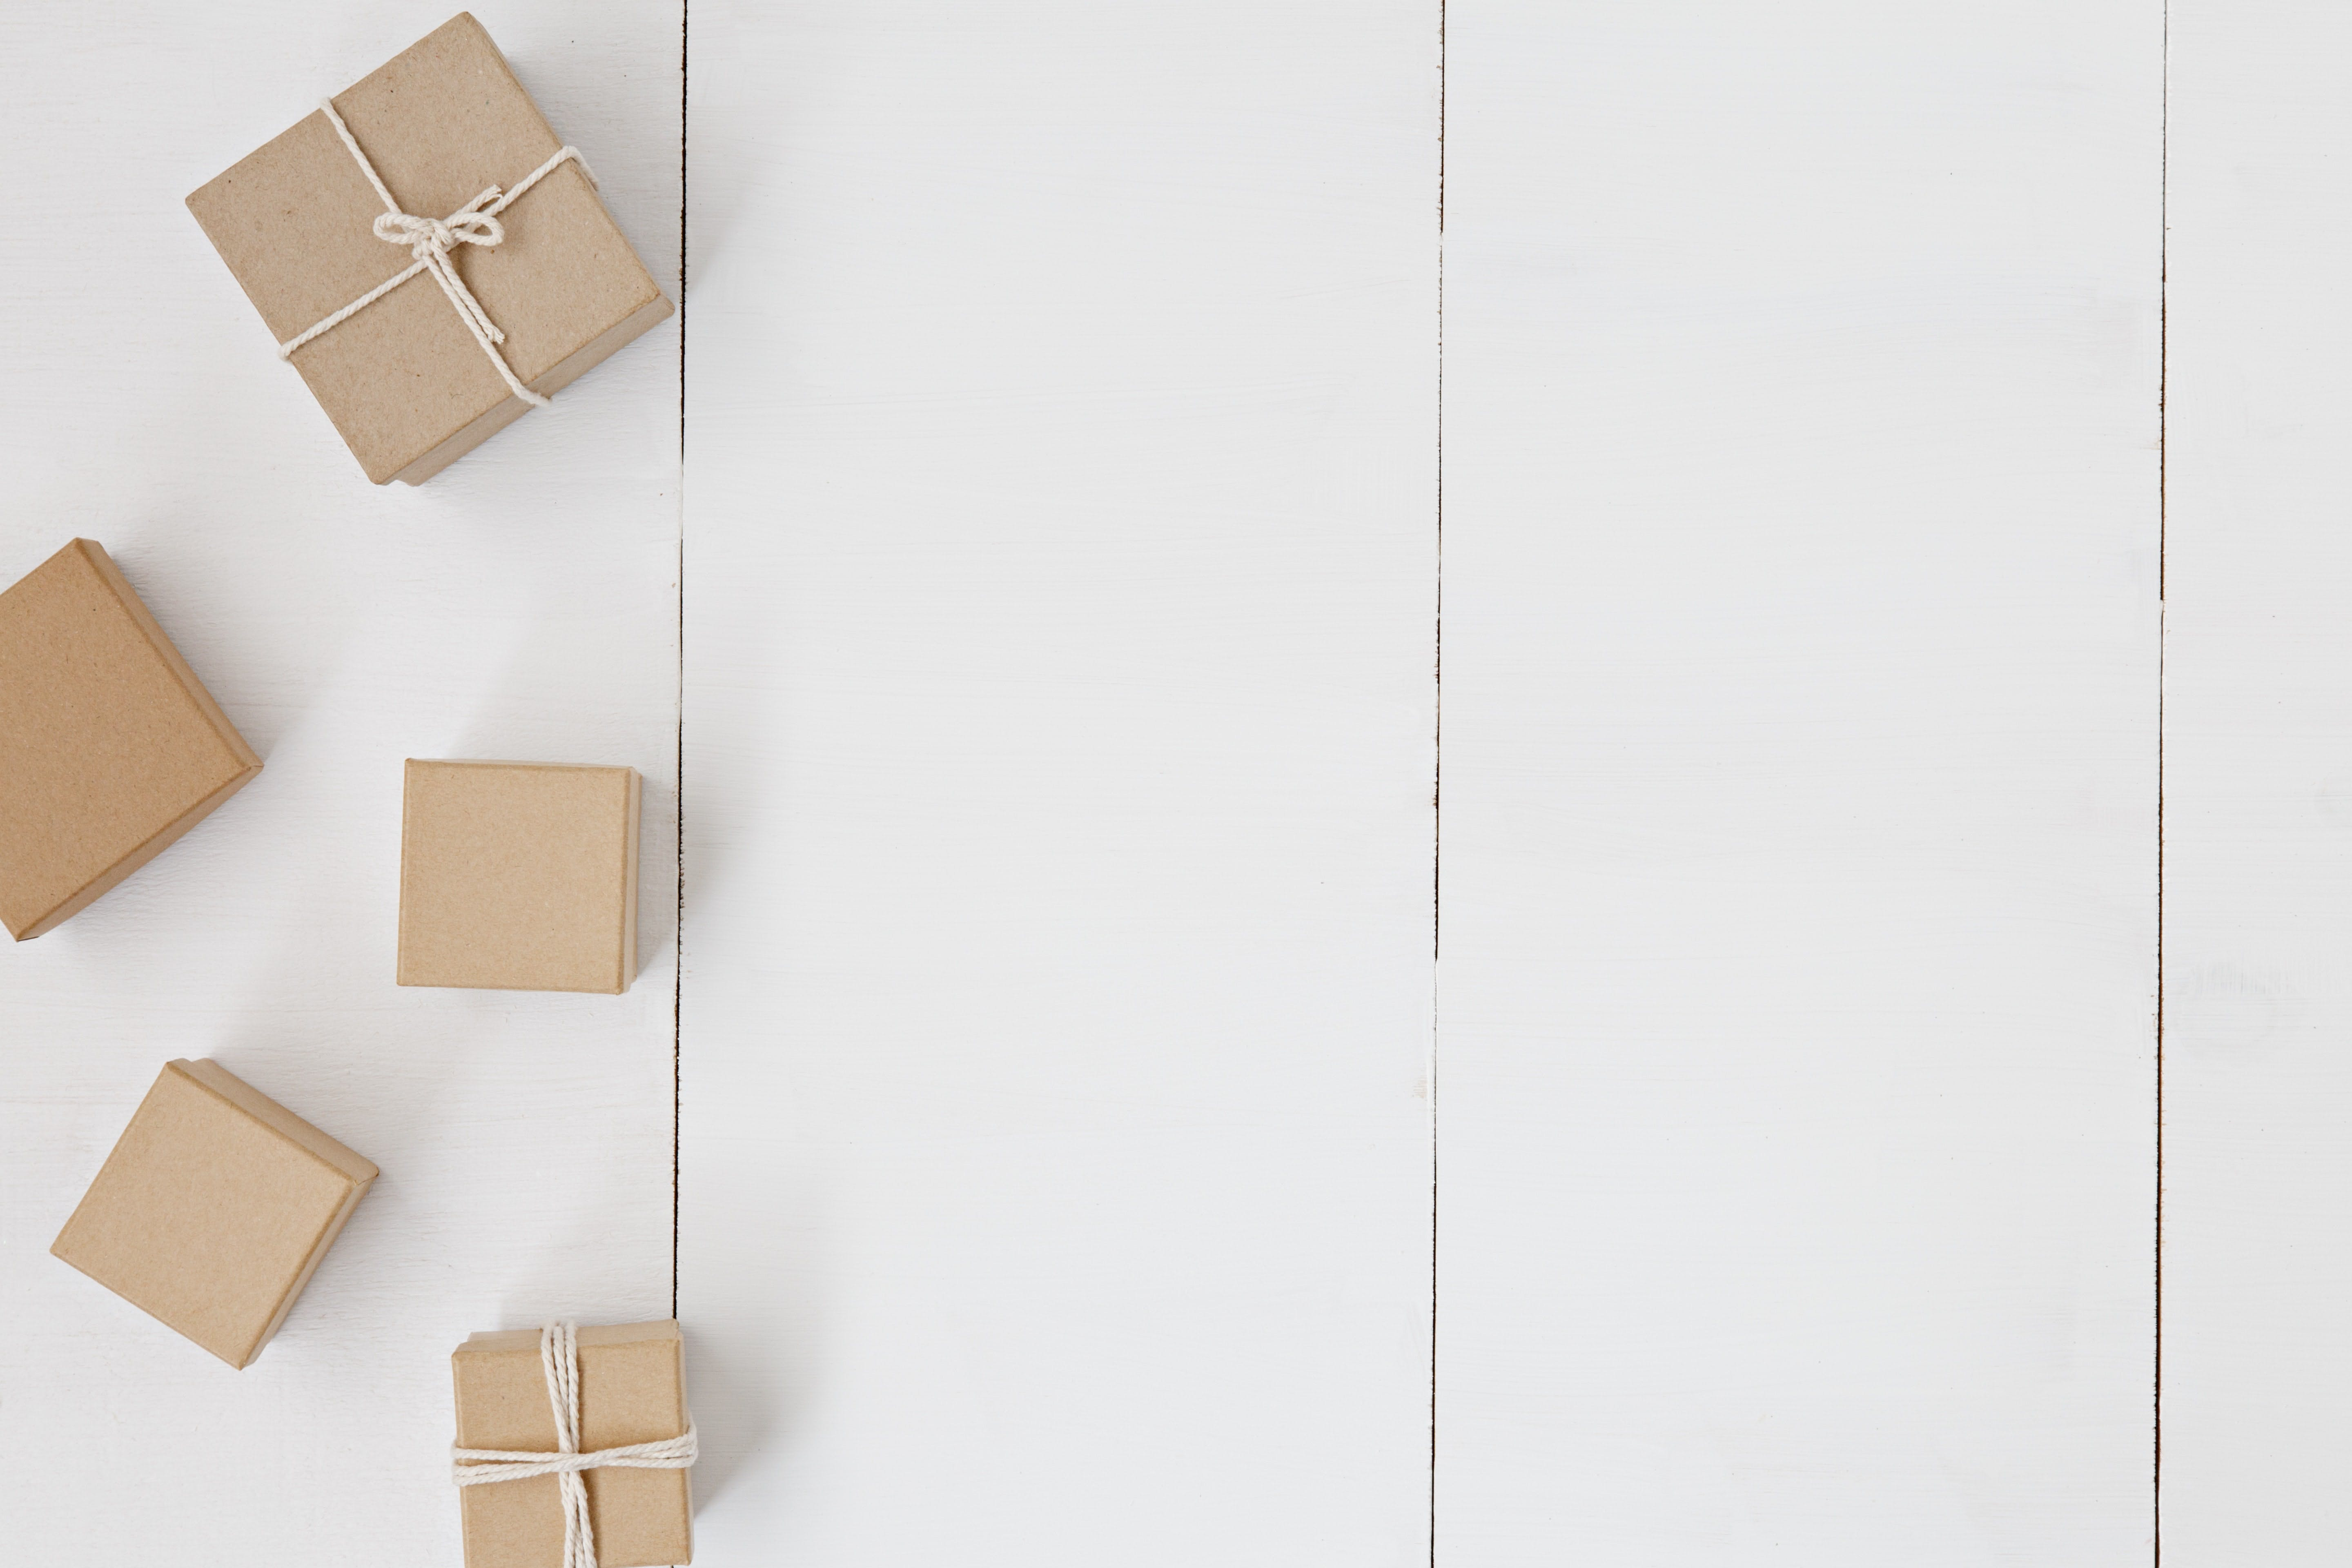 Brown boxes with ribbons on white background. Subscriber only gifts on YouTube is a great idea for keeping people engaged